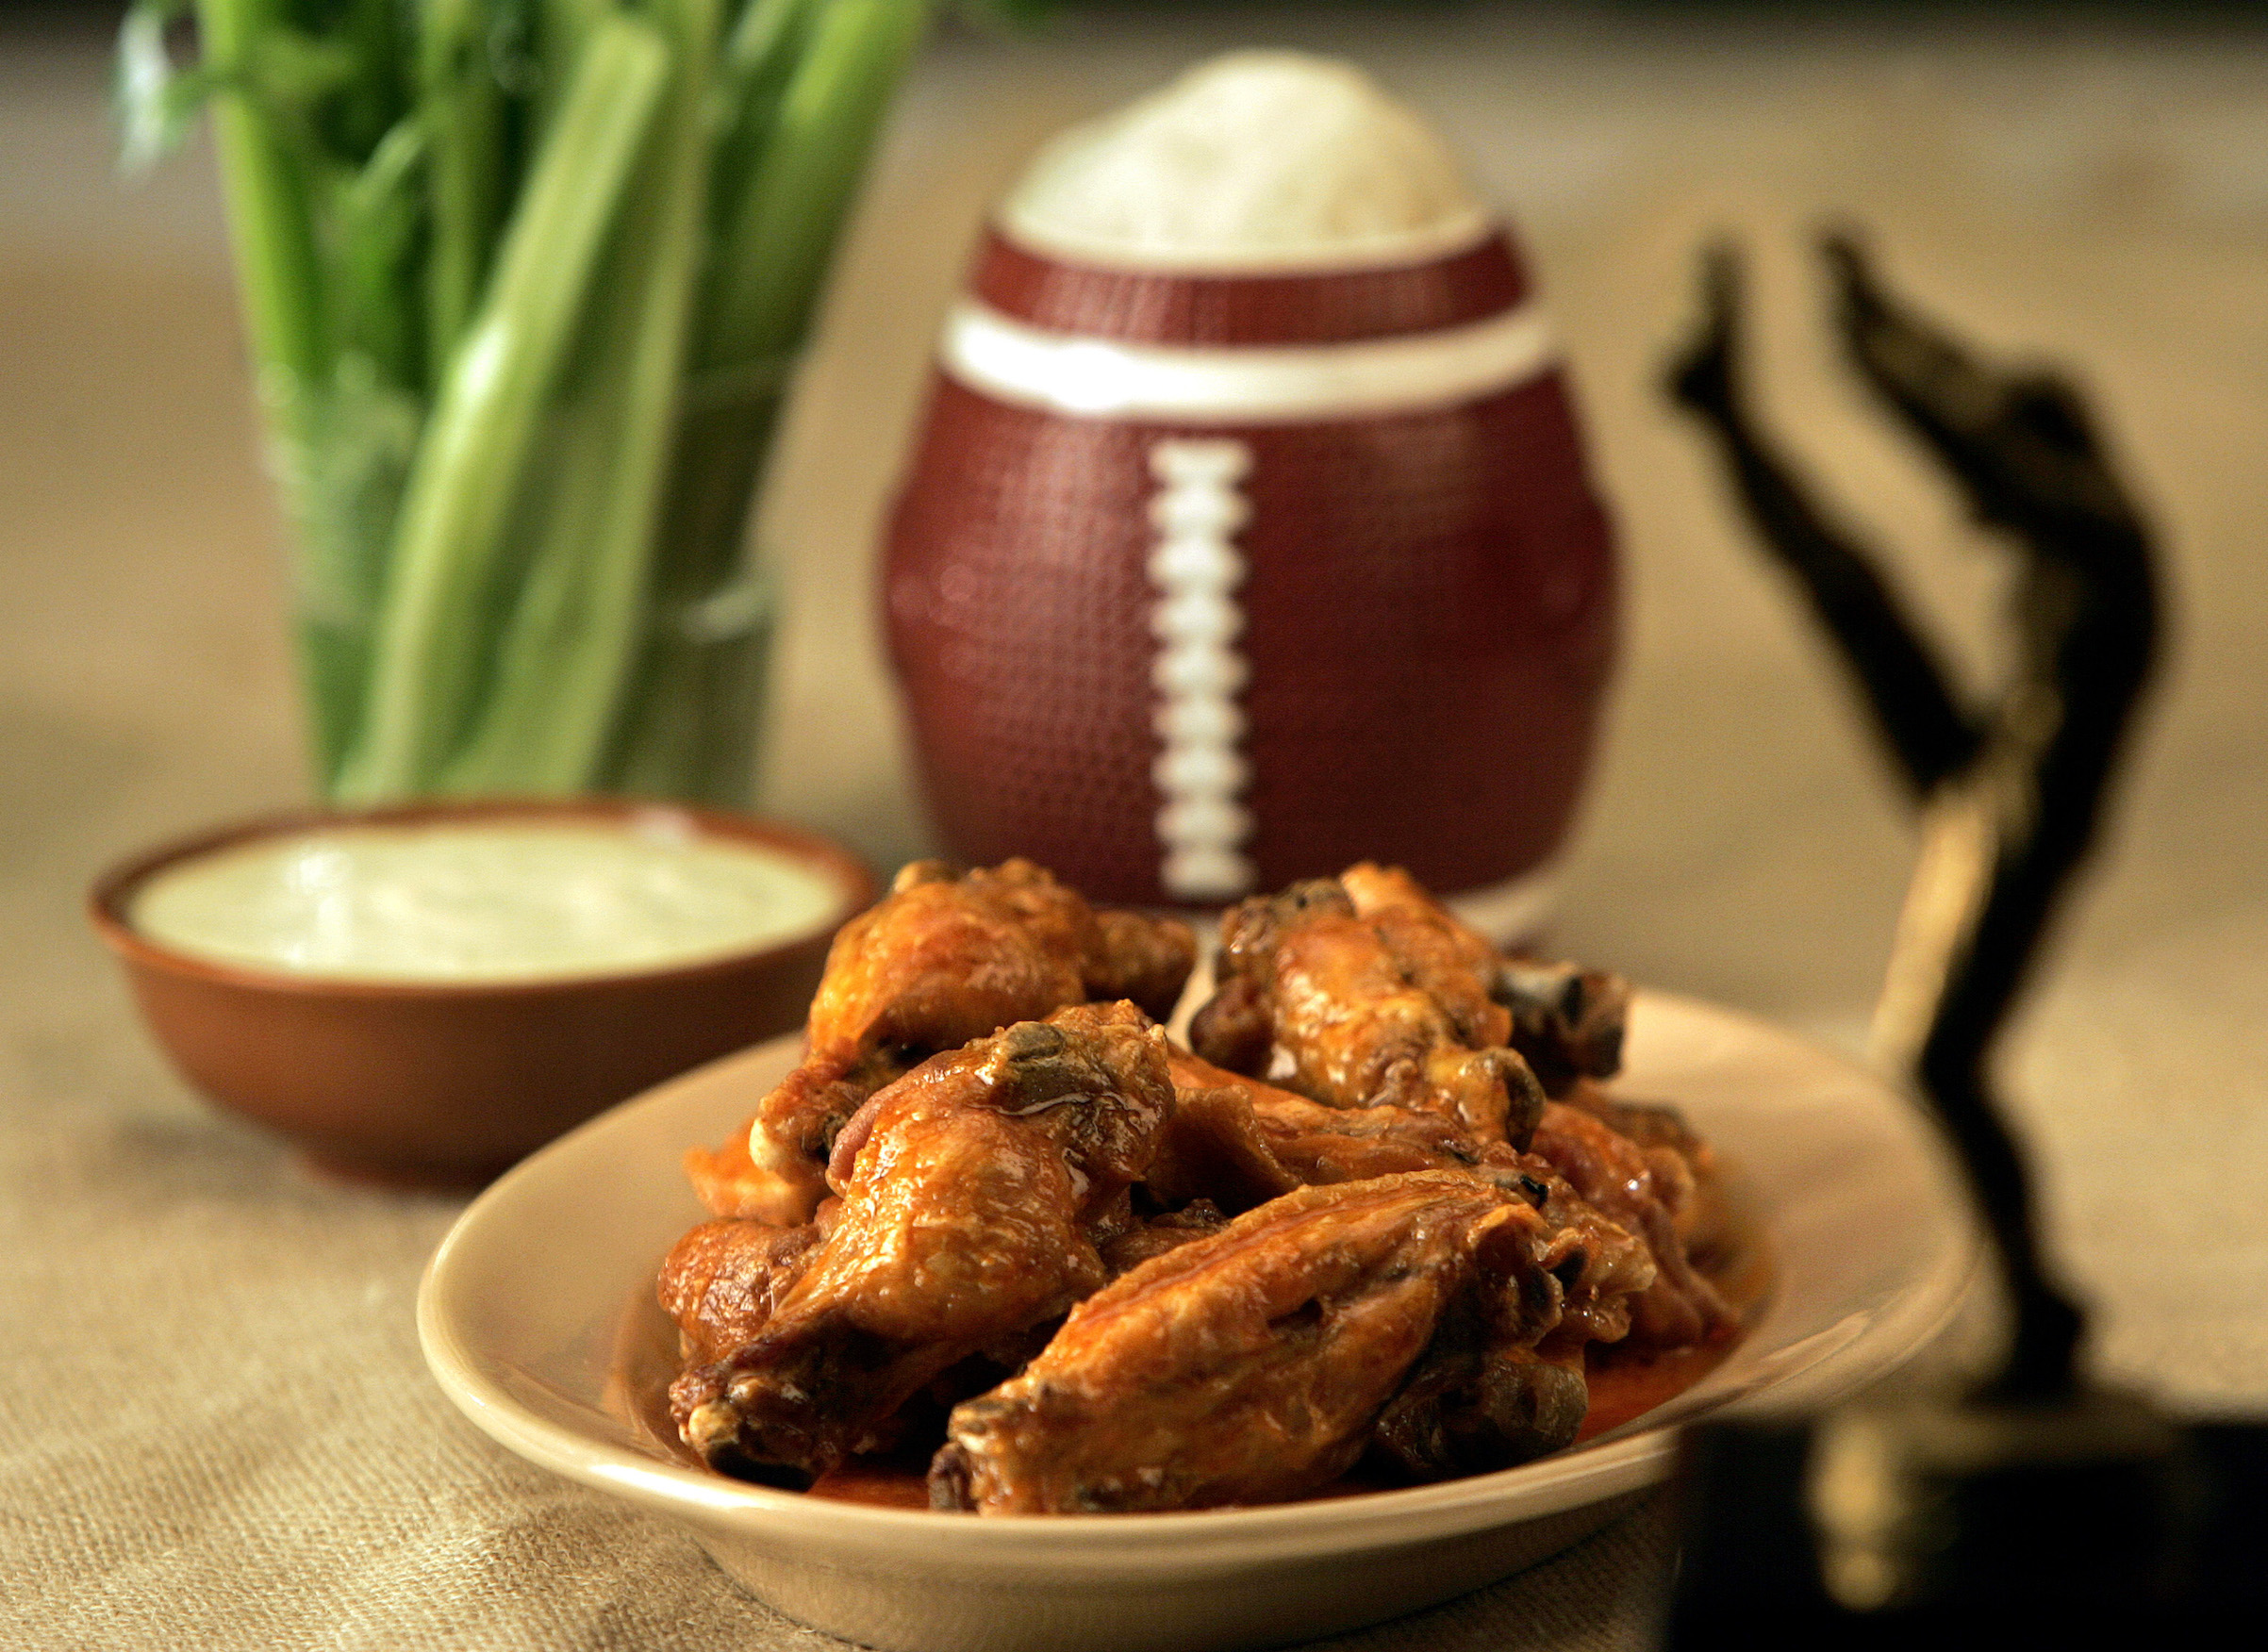 A bowl of Buffalo chicken wings